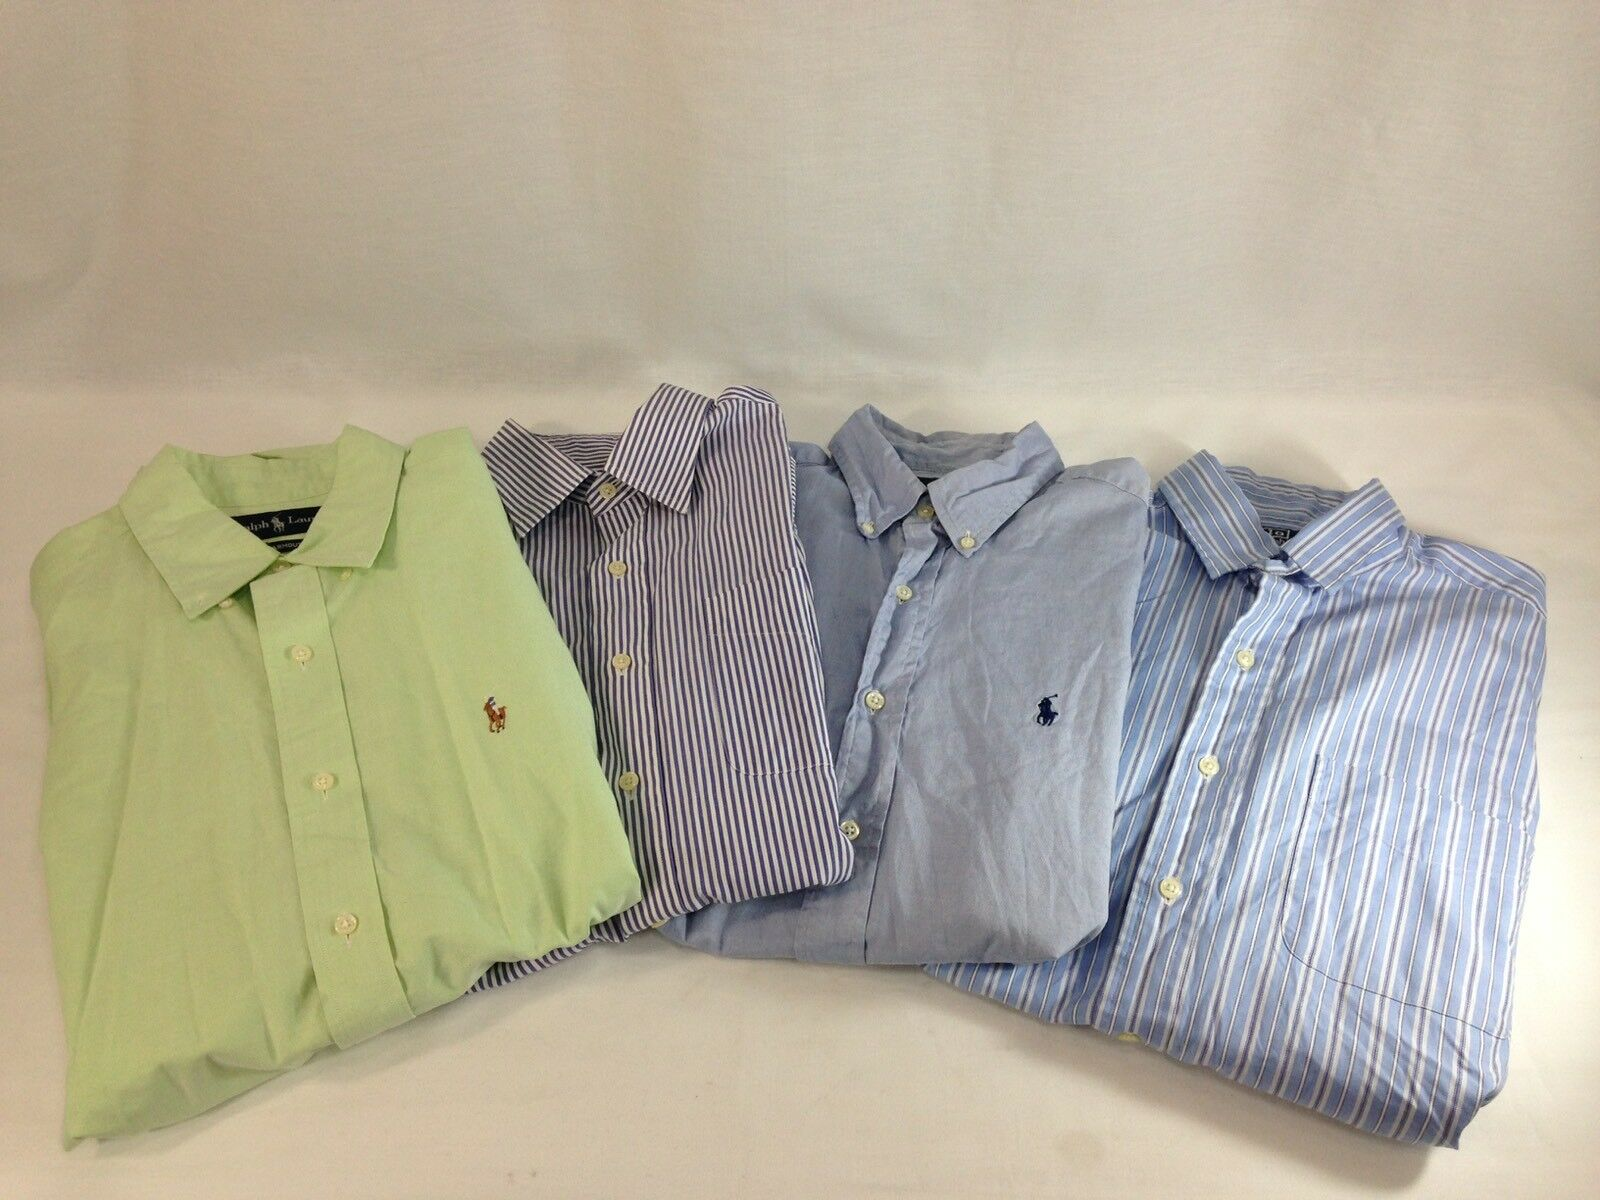 289b3a8631b62 Polo Ralph Lauren Dress Shirts Lot Of 4 Men 2 M Button Down L S Casual Pony  1 15 ntpjof17660-Formal Shirts